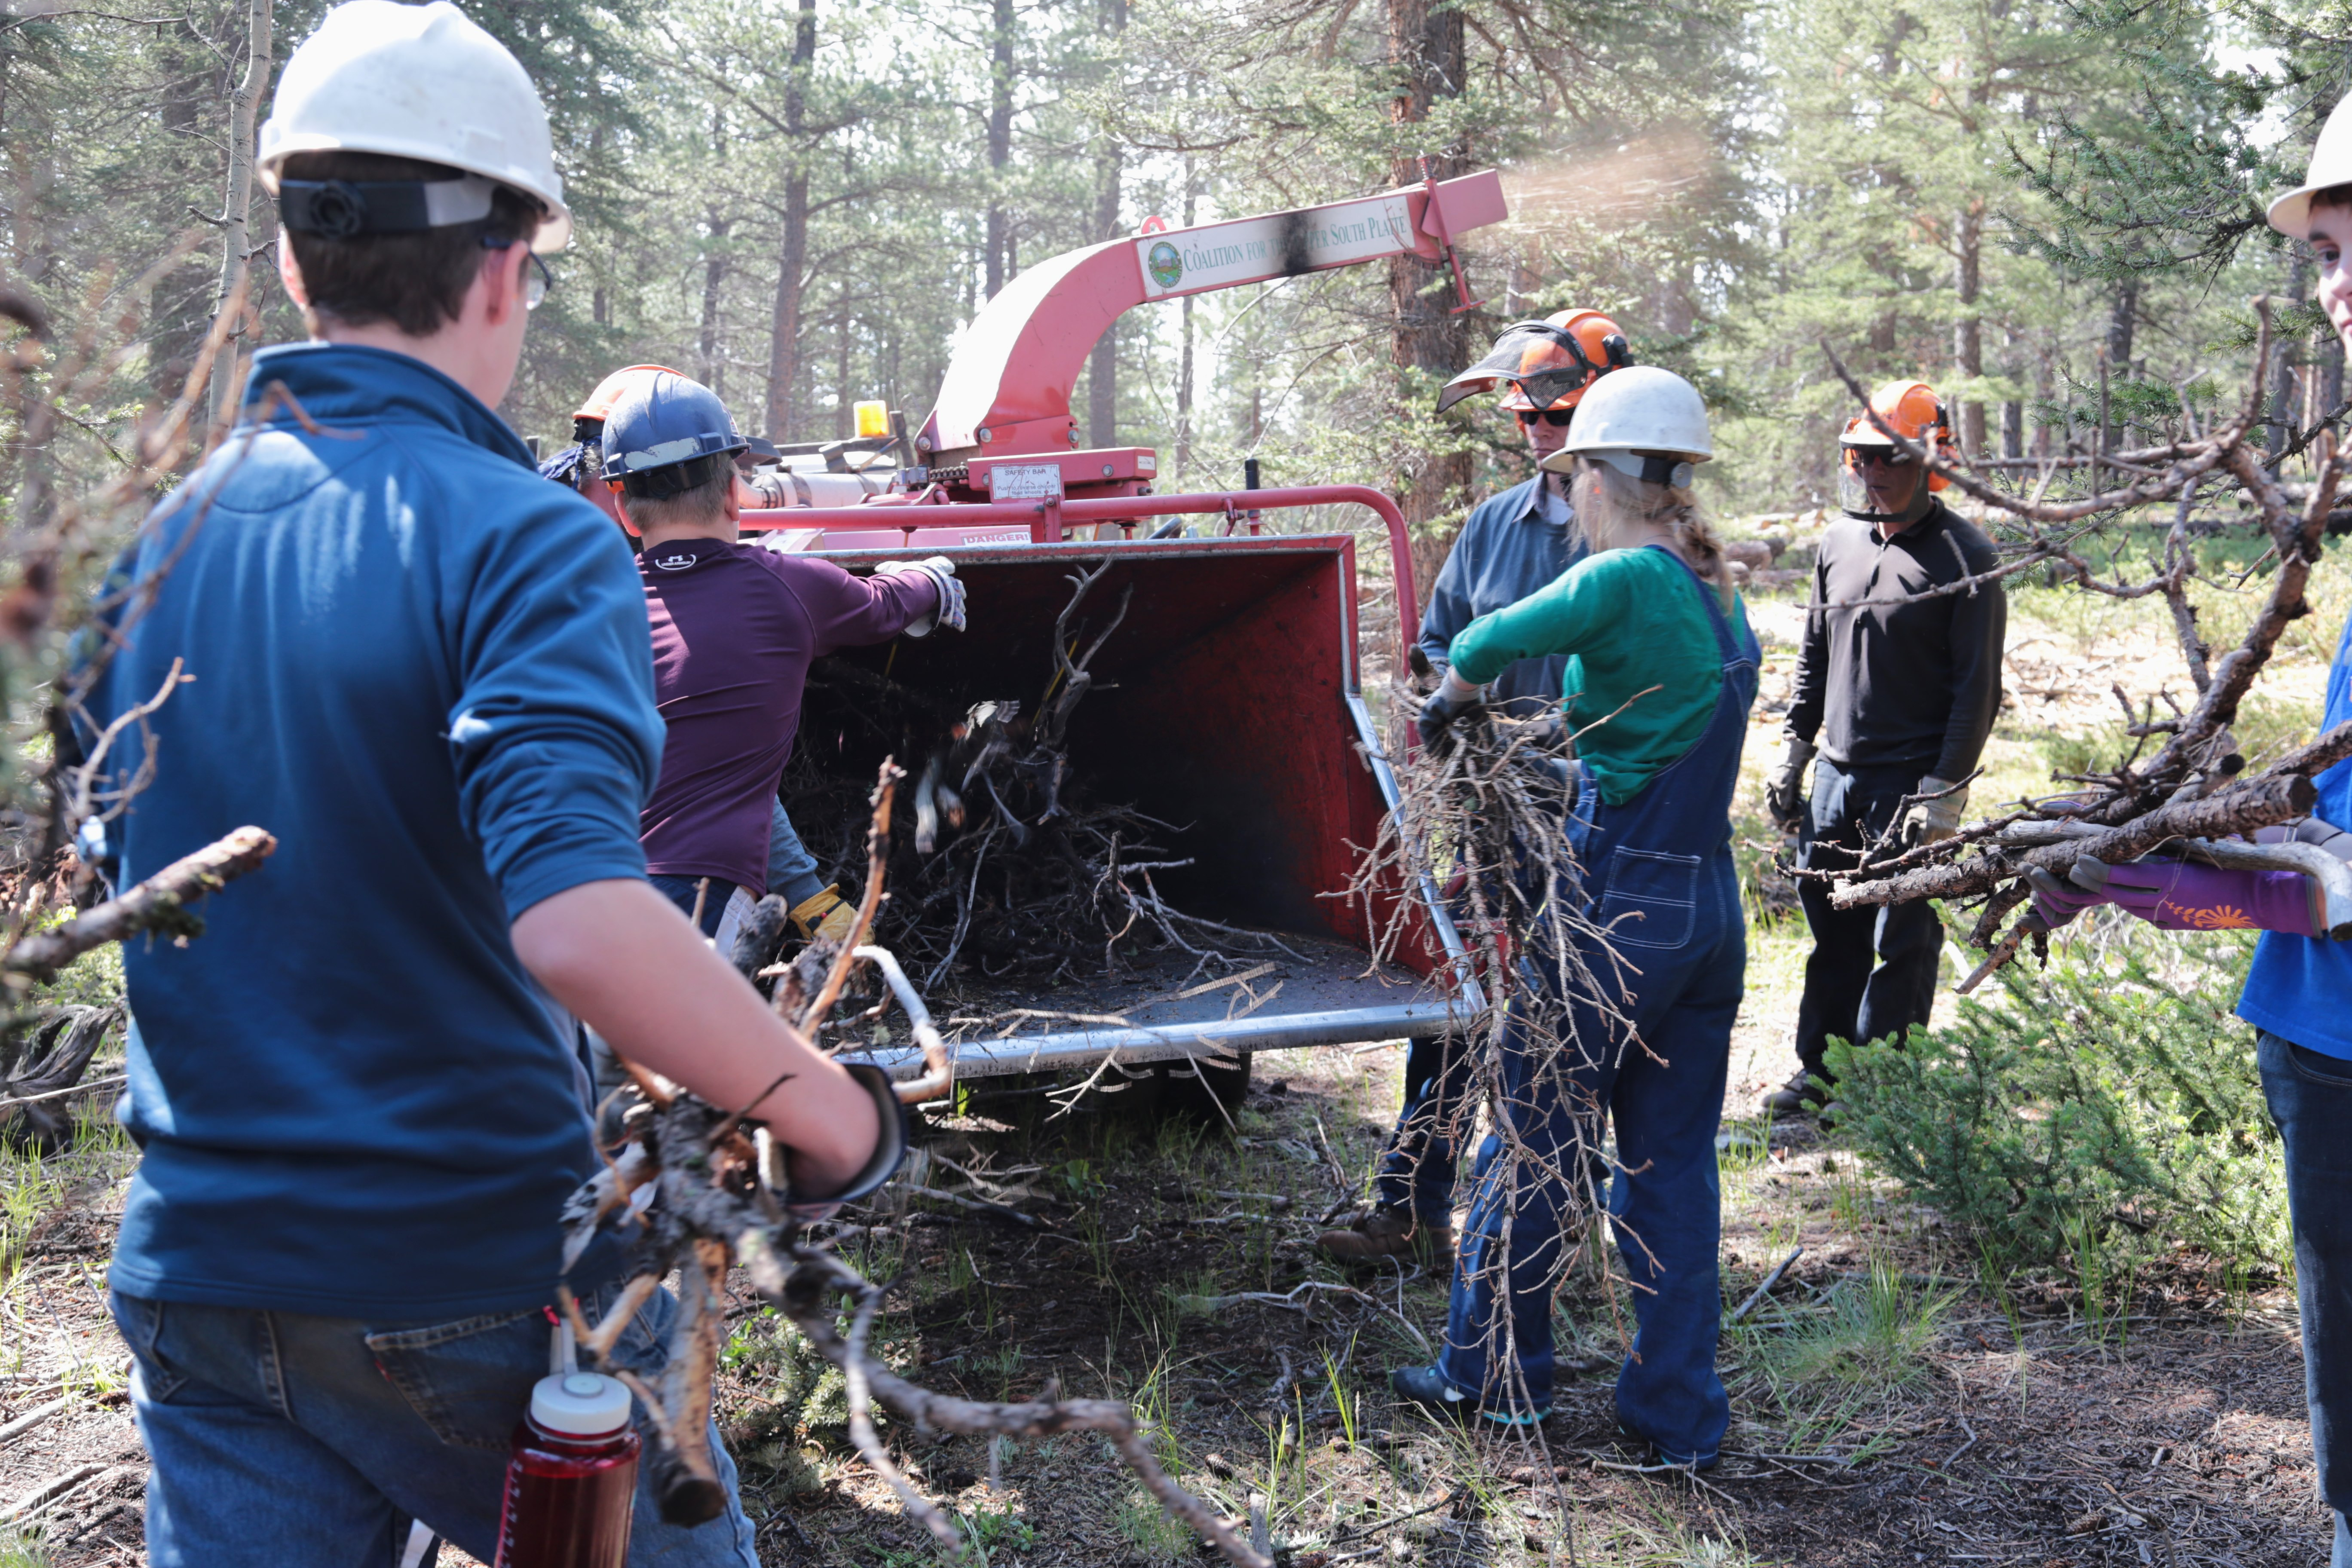 Wildfire mitigation work has many benefits including boosting local economies